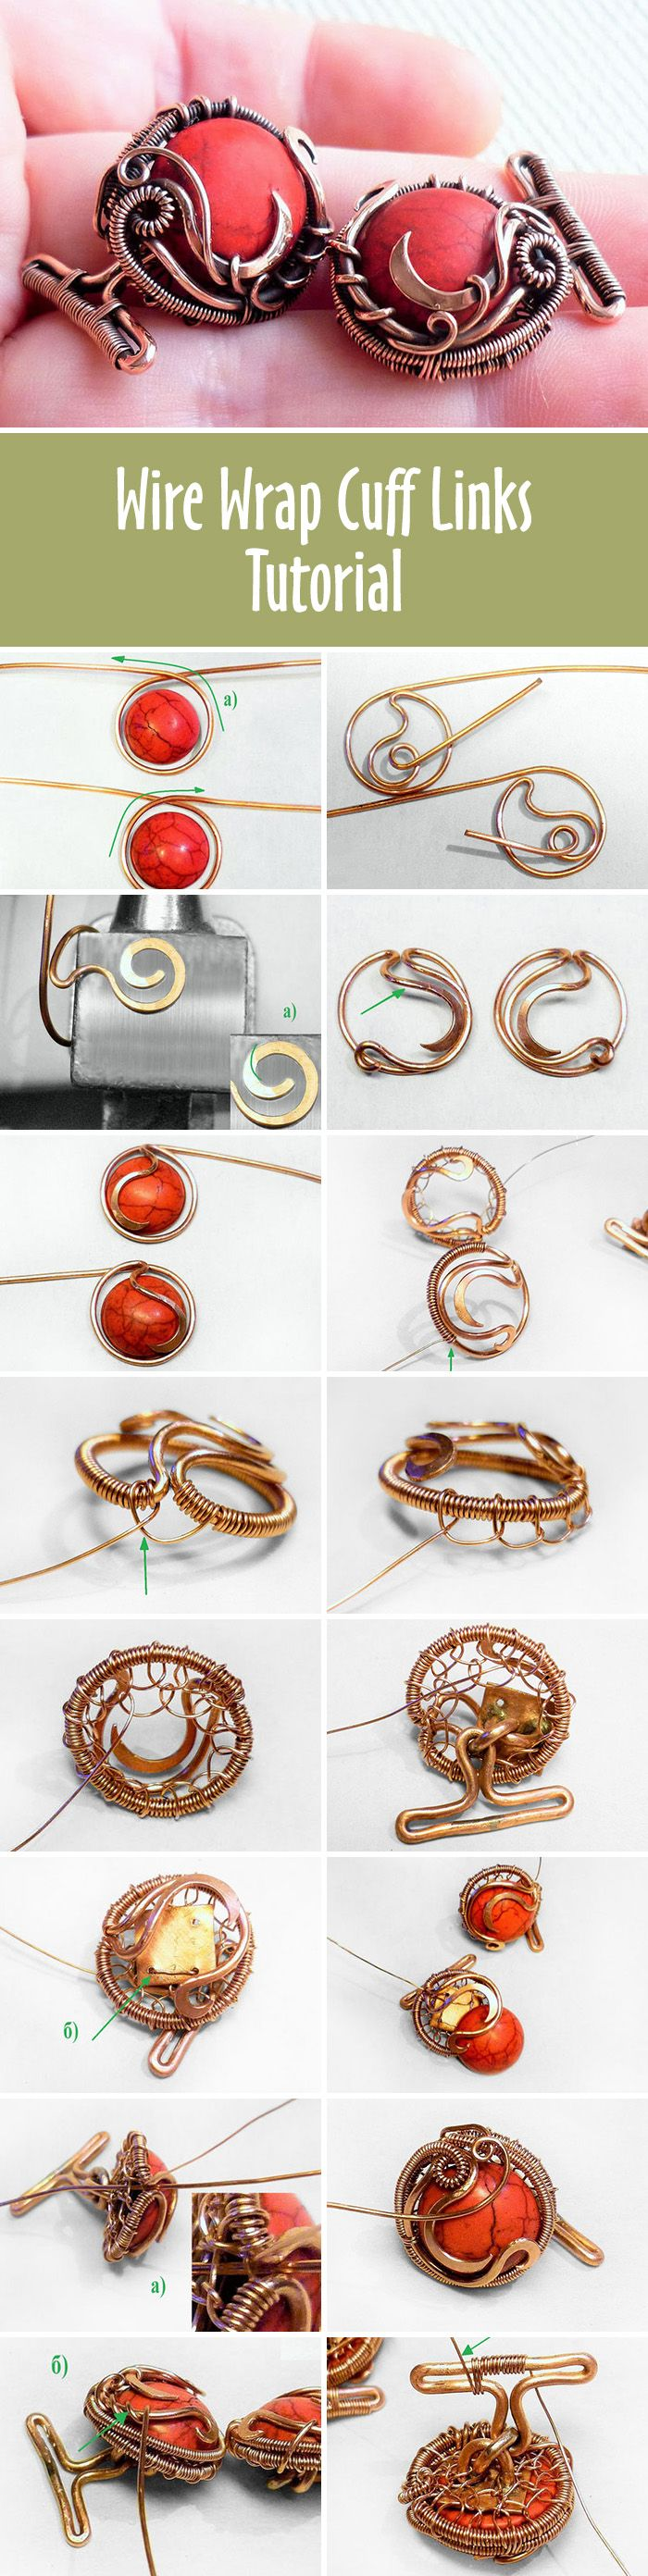 Wire wrap cuff links tutorial   Мастер-класс: создаем запонки ...